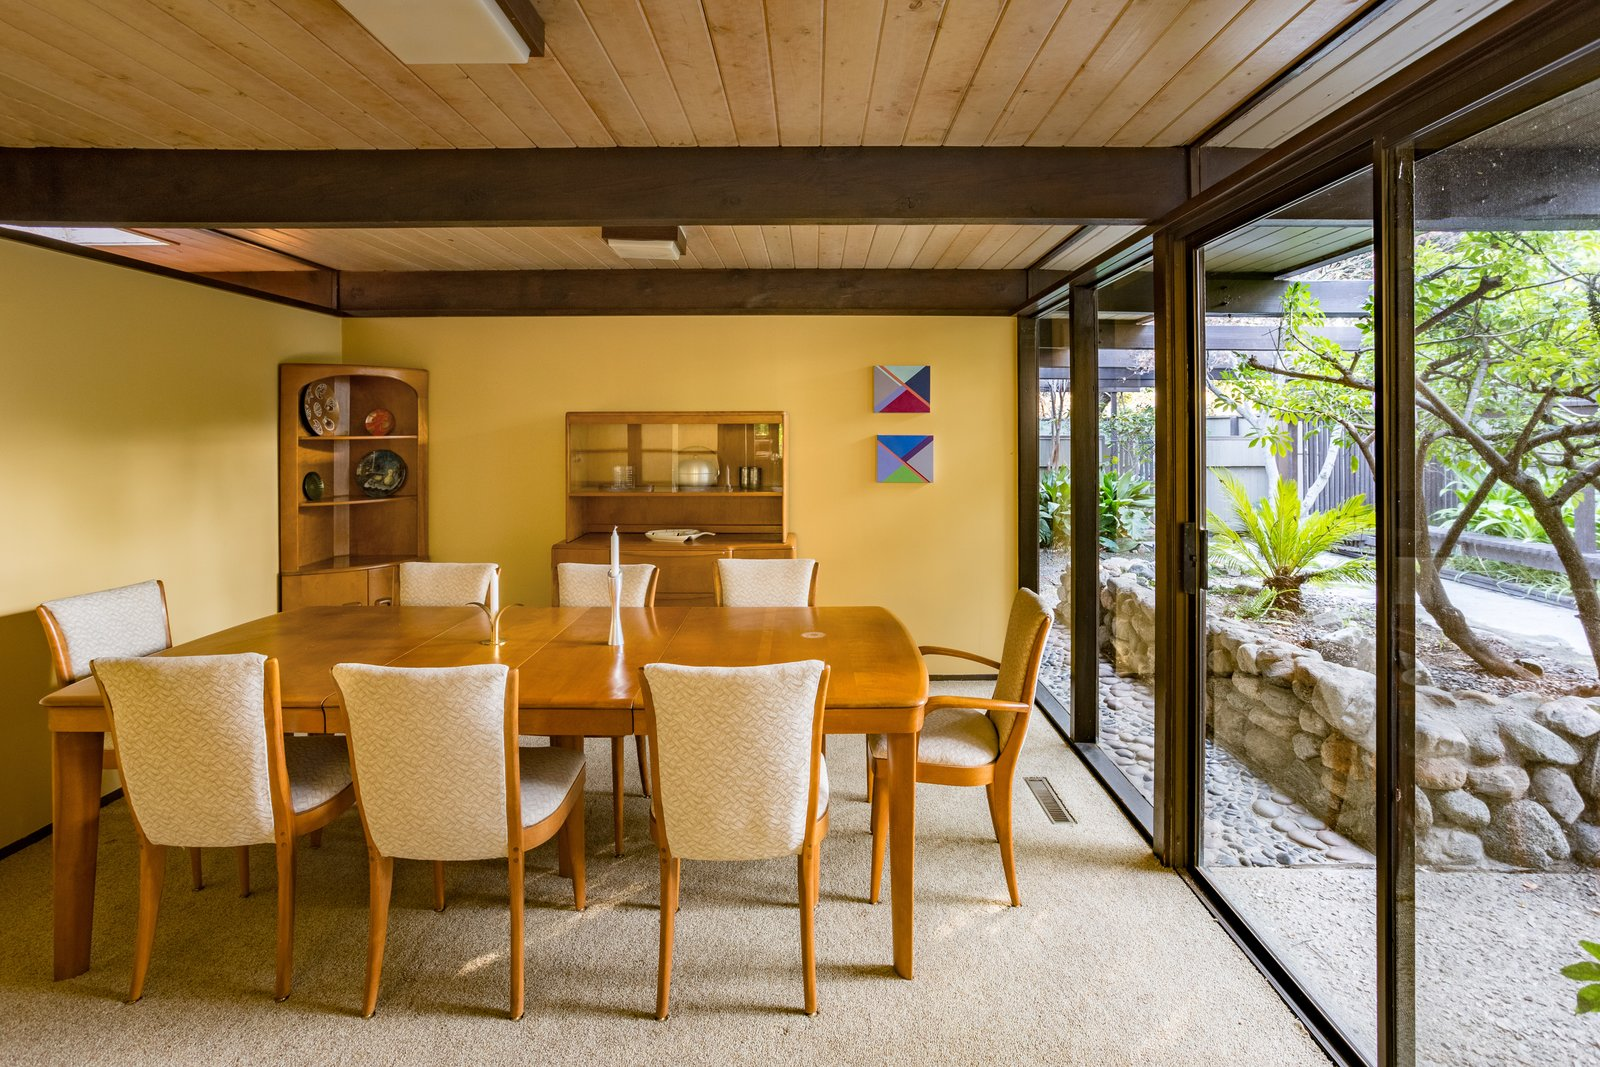 Homeowners can choose to eat in the dining room, pictured above, or bring their meal to a glass-encased lanai that looks out at the grassy backyard.  Photo 8 of 11 in Snag This Midcentury Stunner in Southern California For $799K